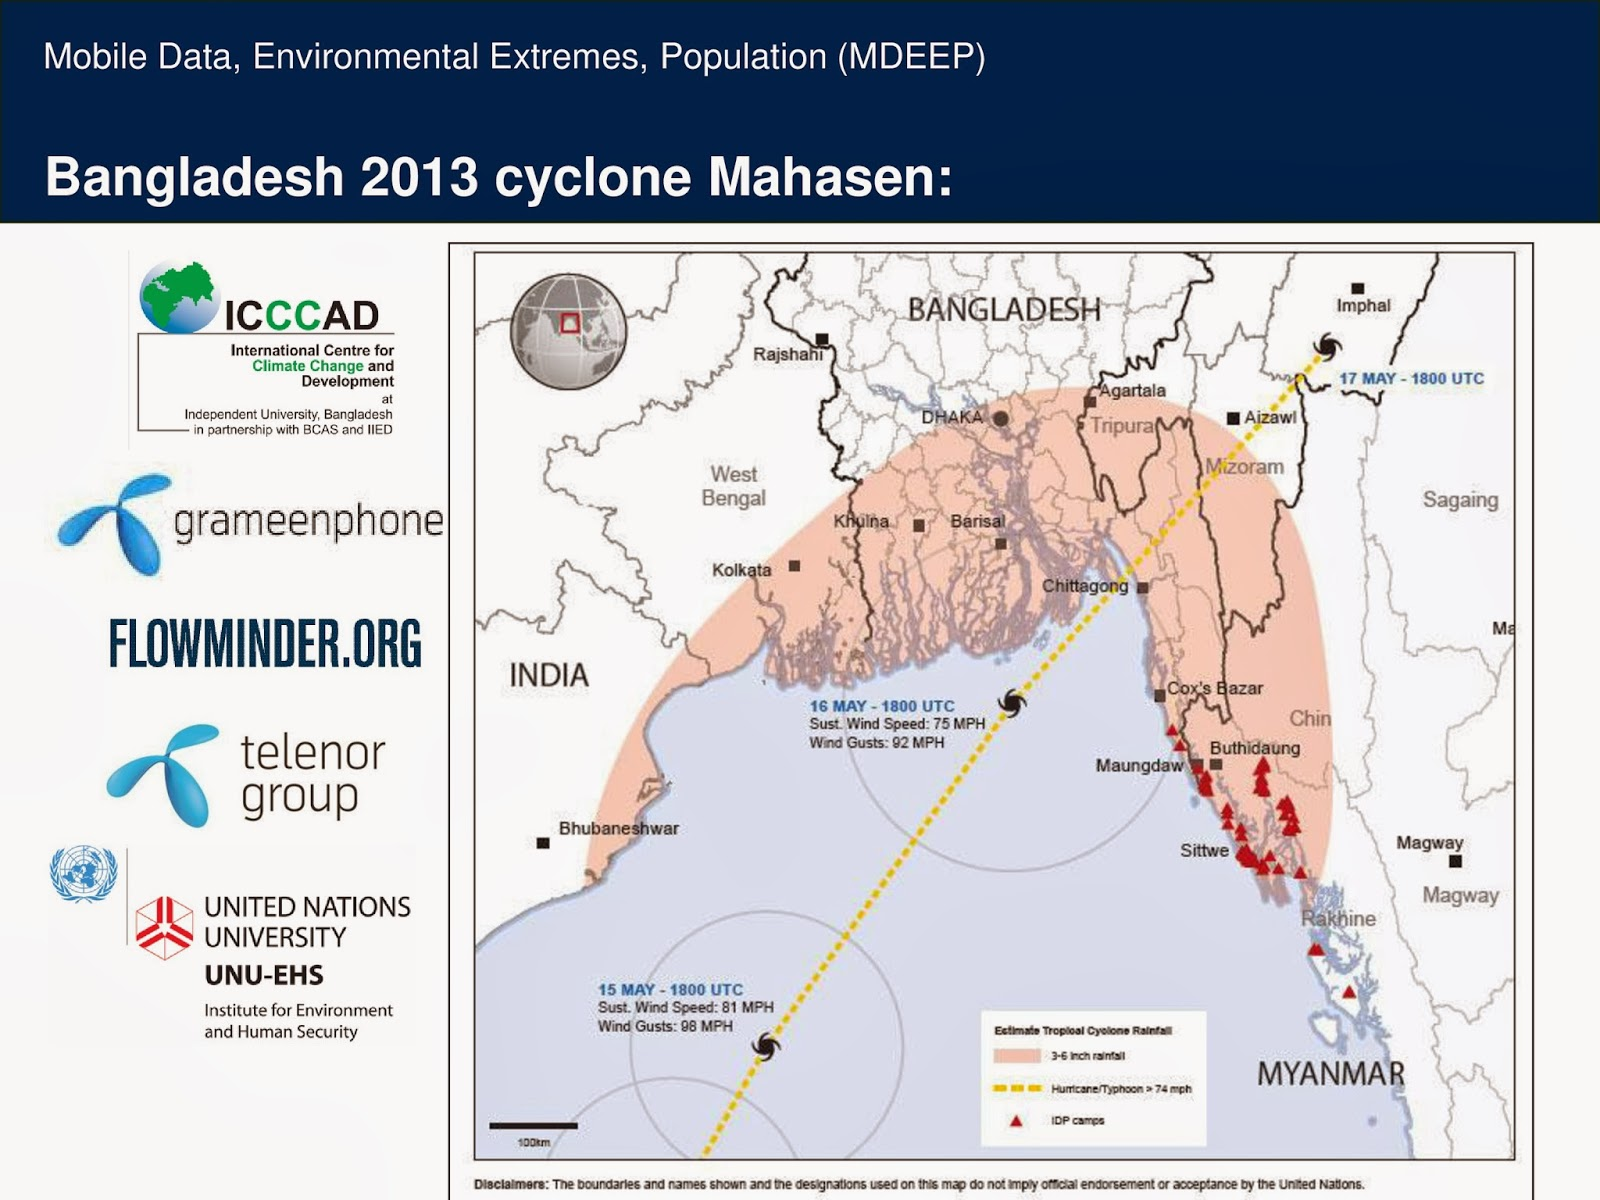 mobile data environmental extremes and population mdeep